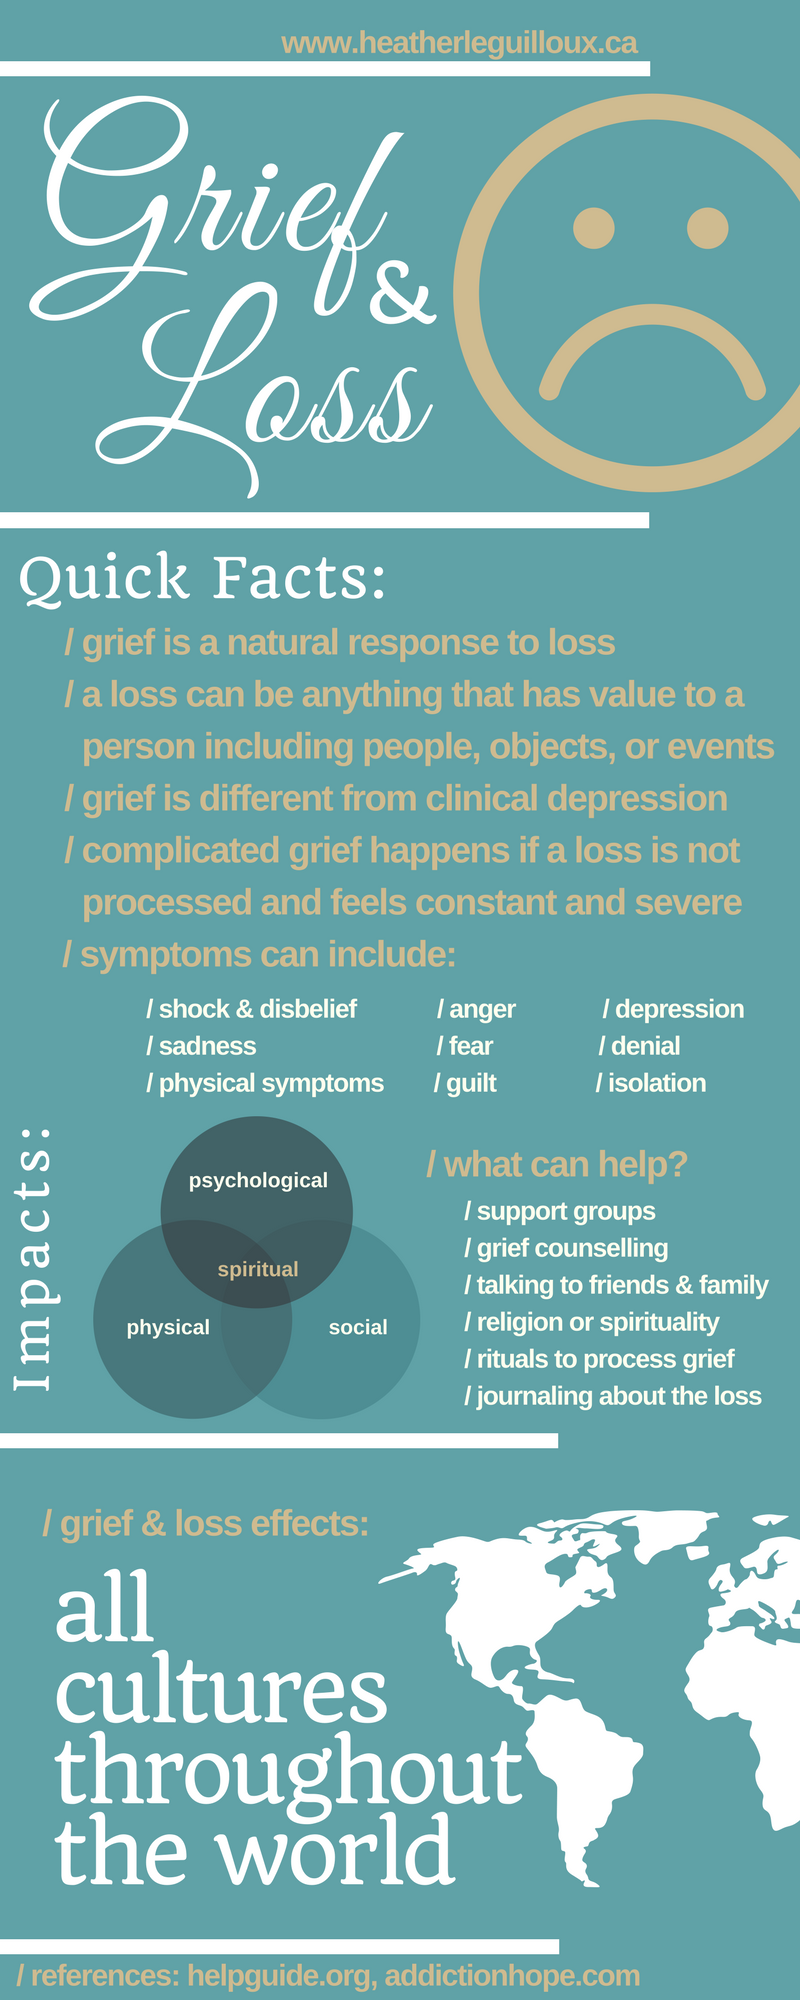 compare and contrast theories on grief and loss Grief and bereavement are different for each individual, that is no two people will experience a loss in the same way a loss is the absence of something we deem meaningful over the years there have been many different theories of grief, but it is not a 'one size fits all' approach.